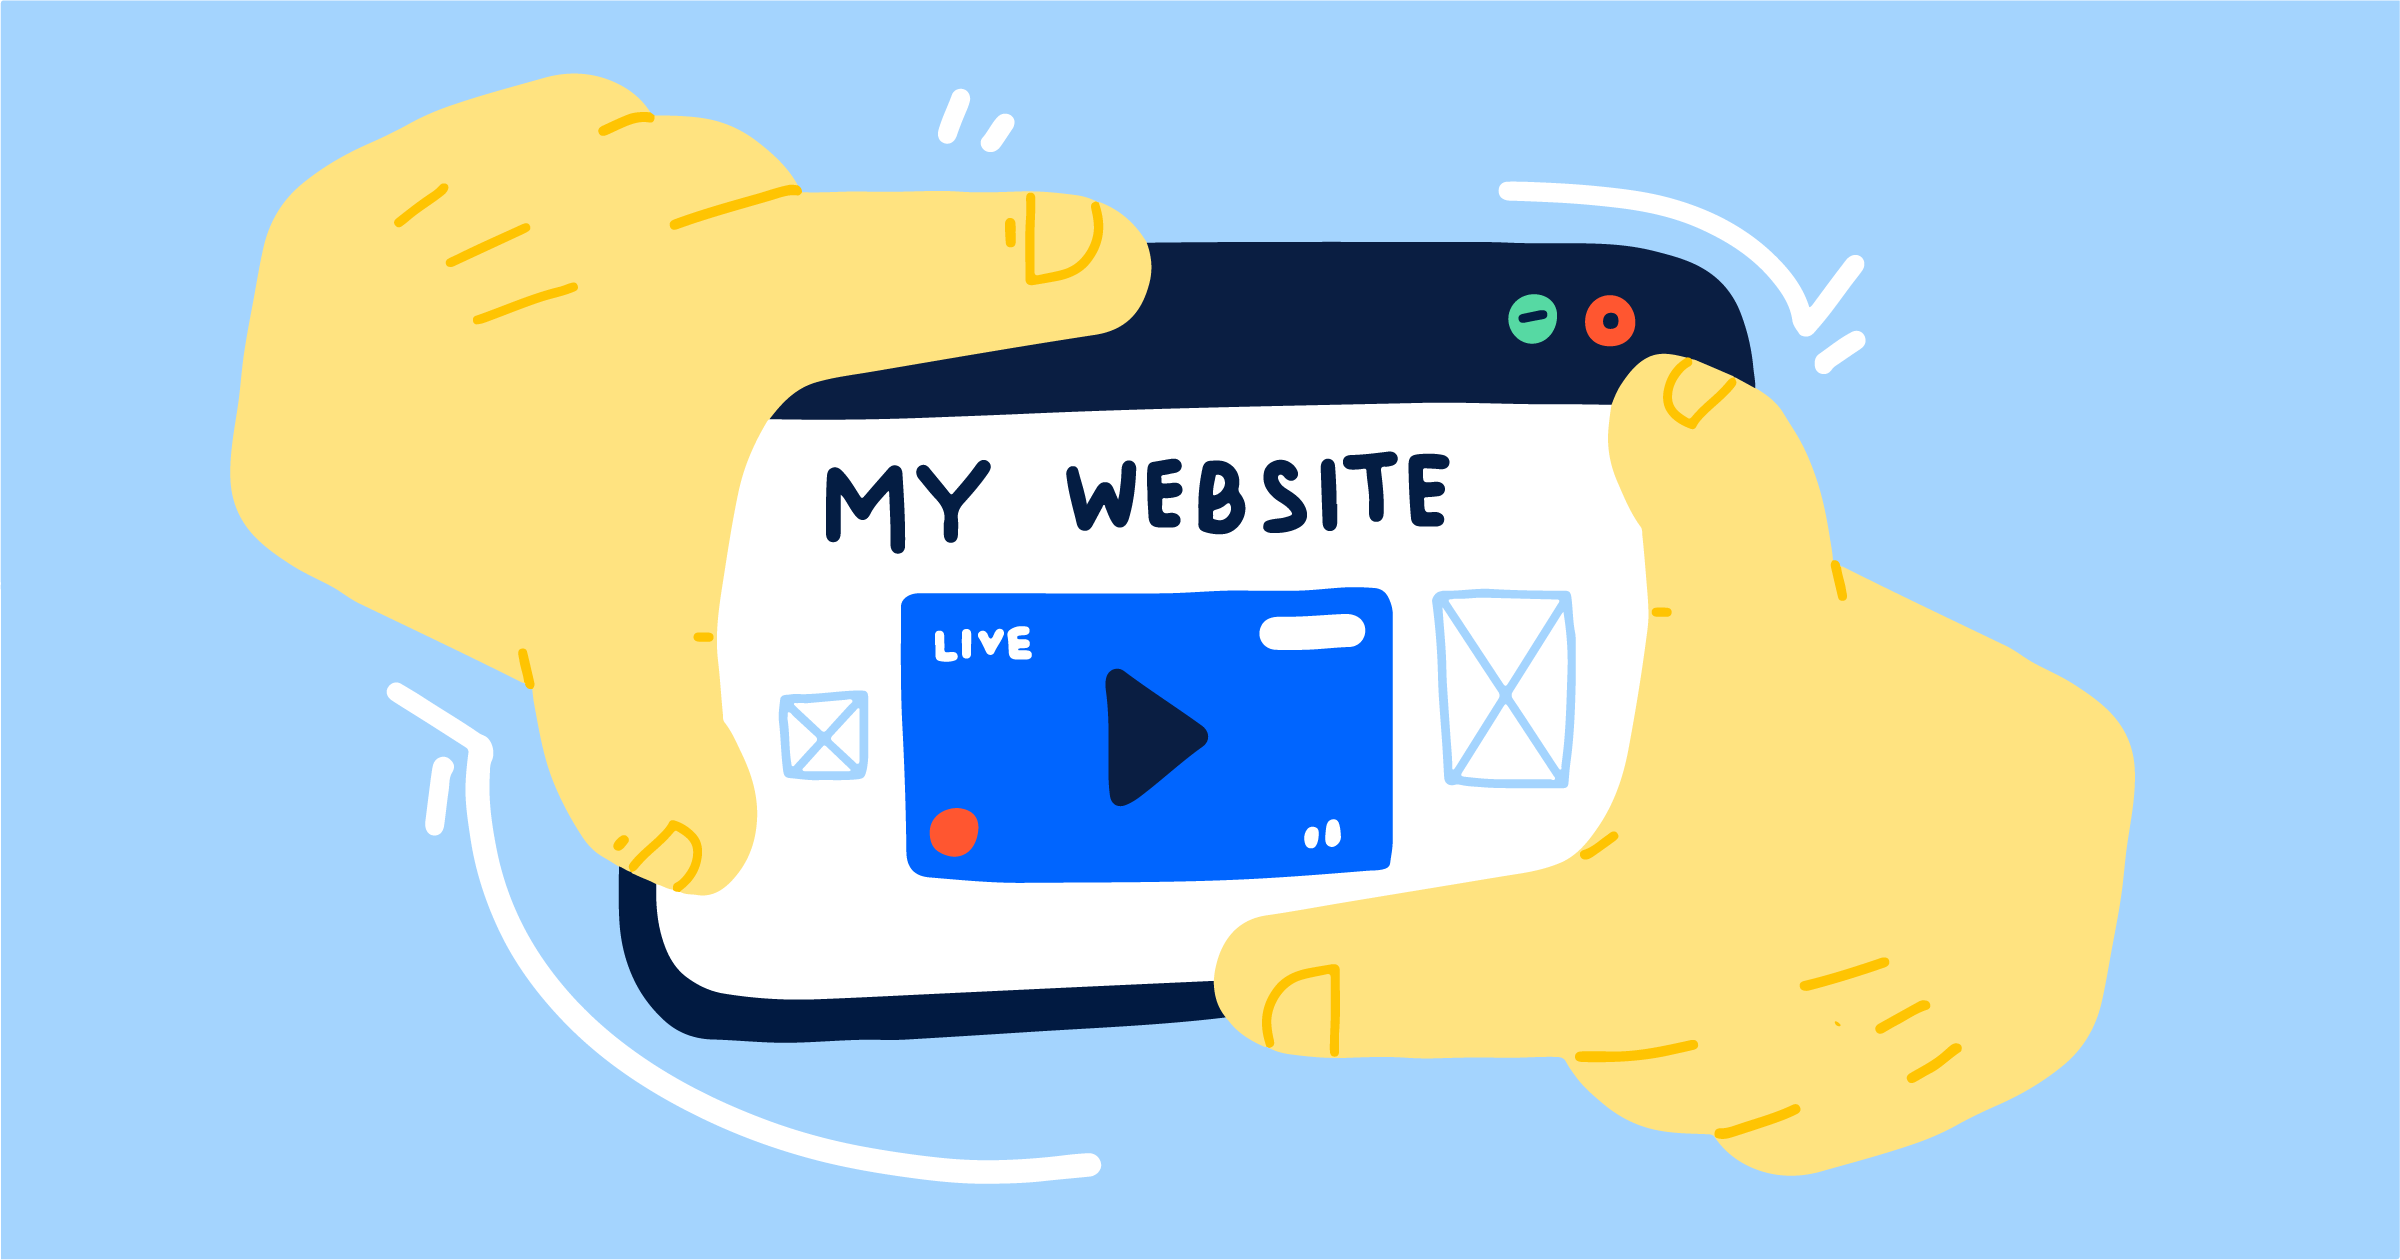 How to stream live video on your website